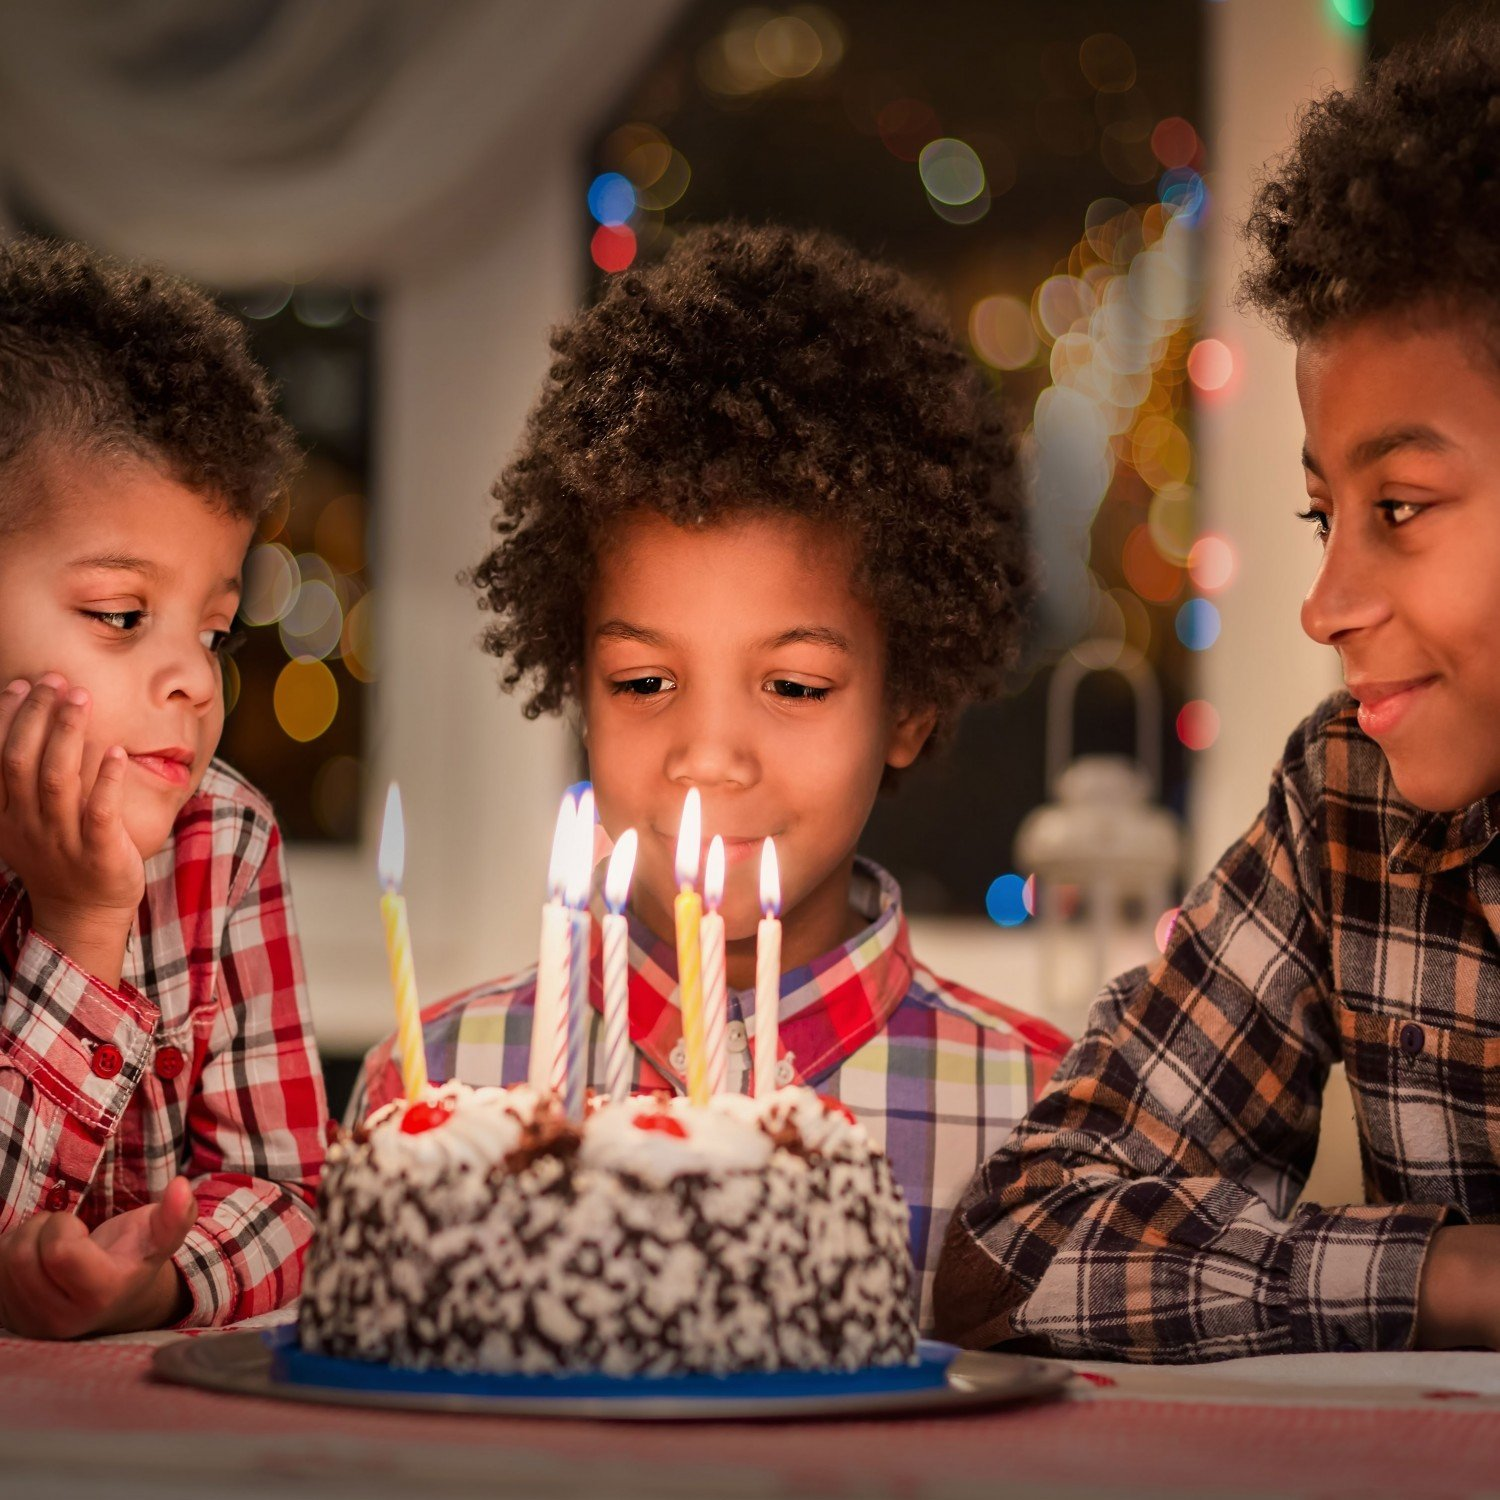 kids looking at candles on a birthday cake